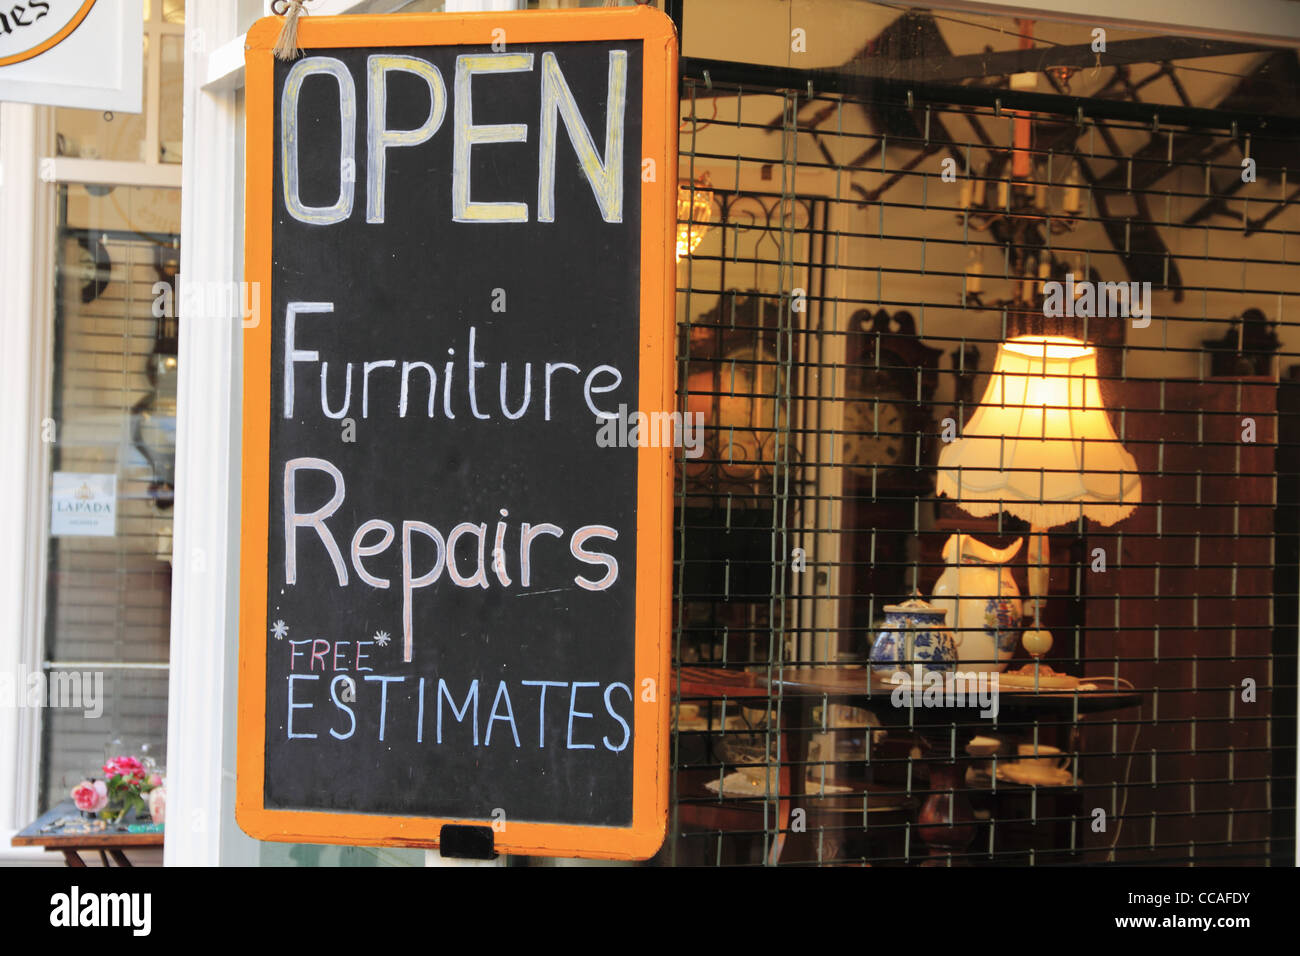 Sign advertising furniture repair repairs and free estimates in an antiques antique shop window. - Stock Image